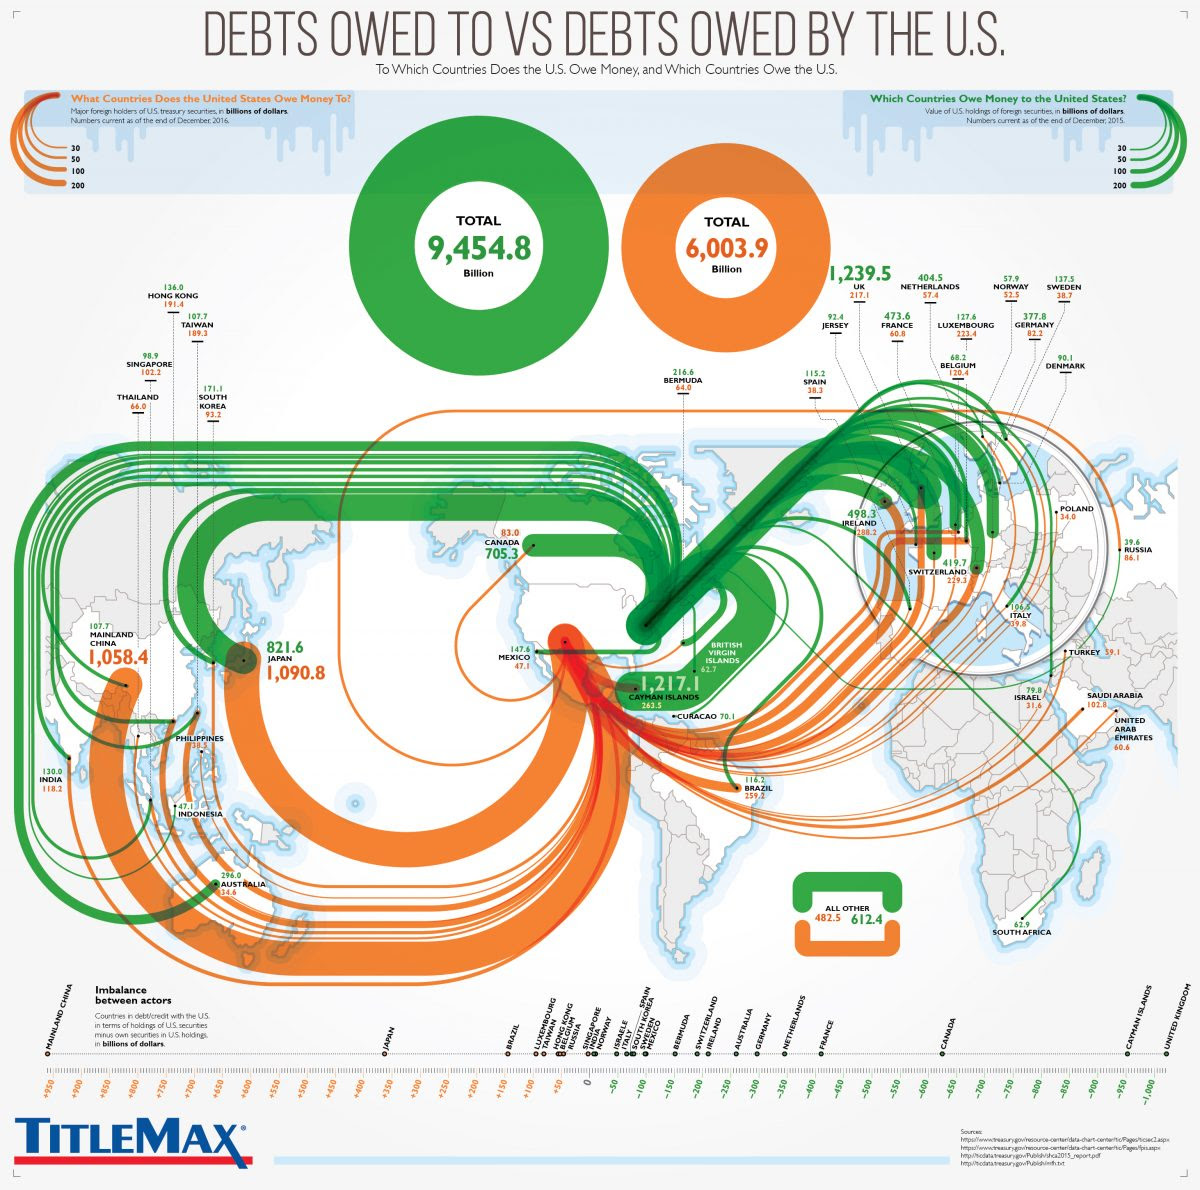 Debts Owed To VS Debts Owed By The U.S